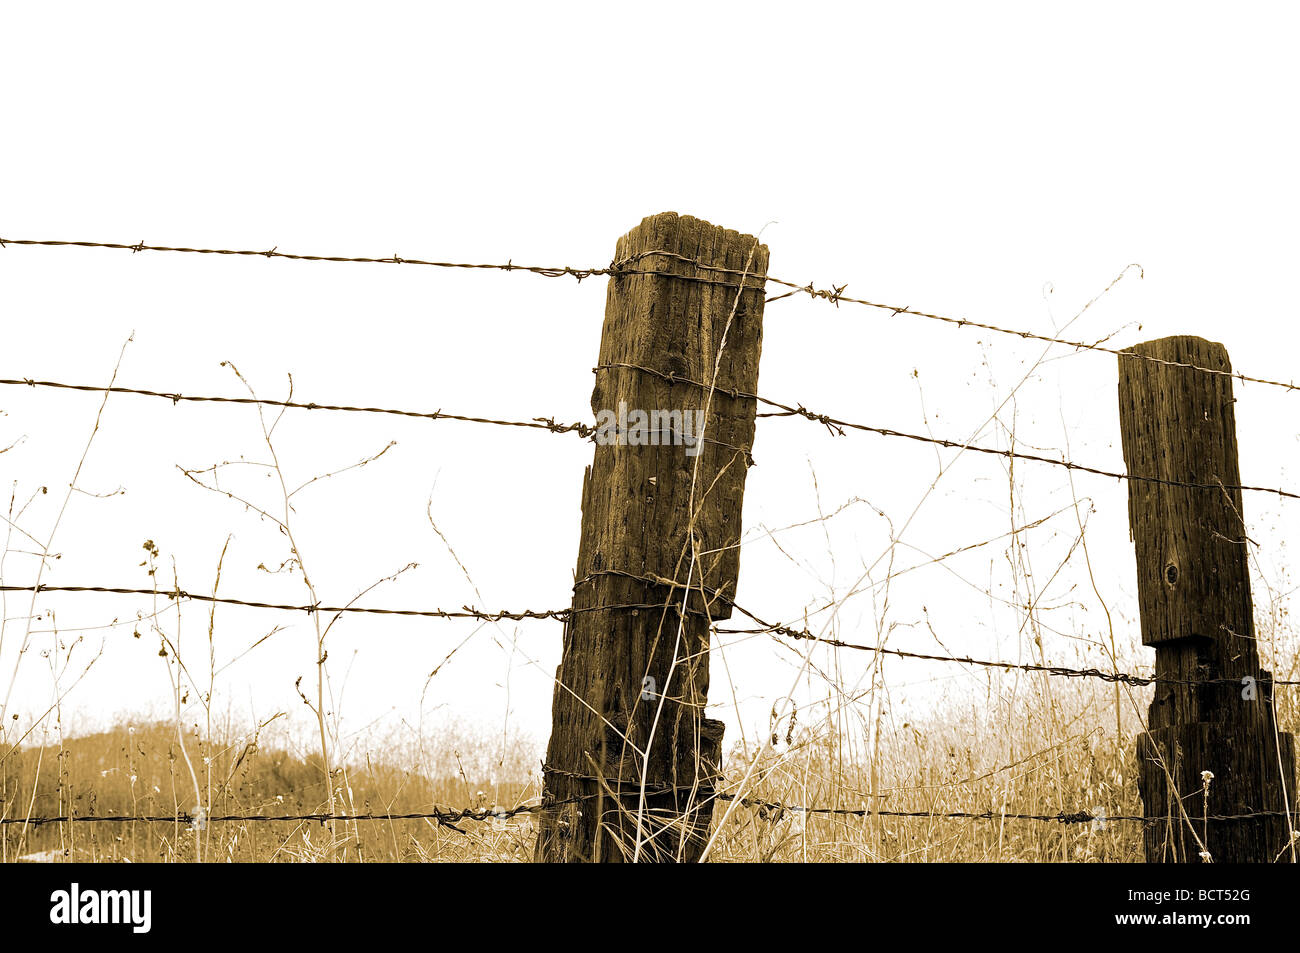 Attractive Barbed Wire Fence Front View Image Collection ...